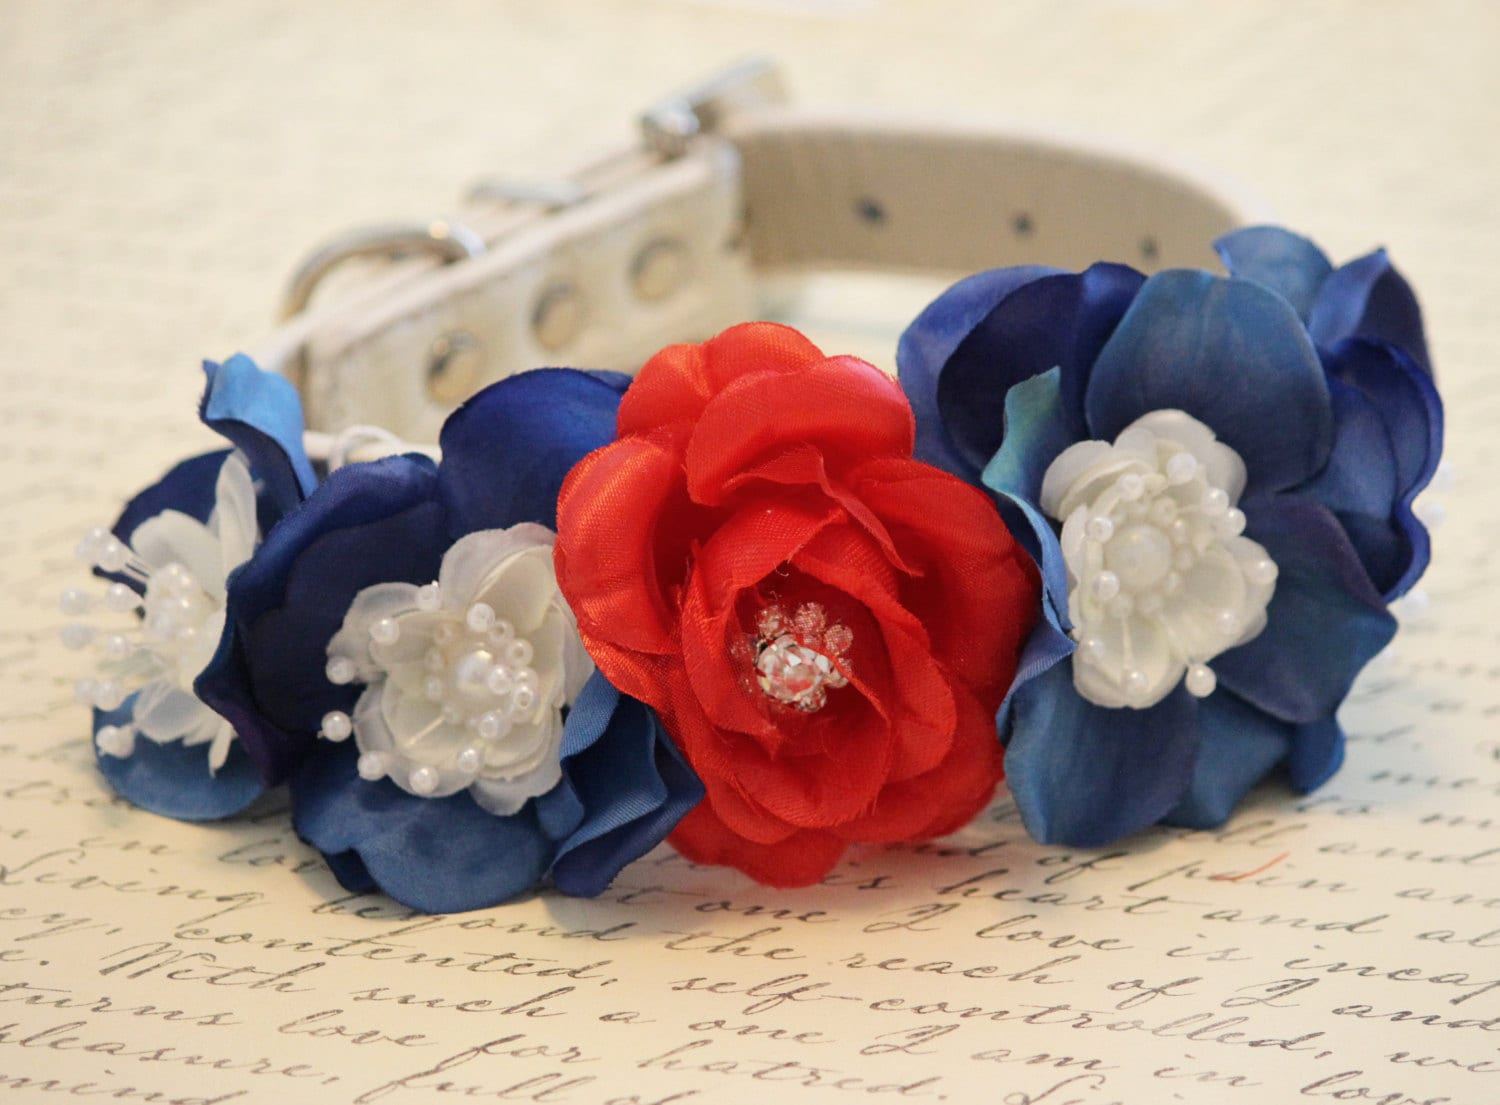 4th of July Celebration - Unique Dog Collar- High Quality leather - Red and blue flowers - Floral Dog Collar with Pearl and Rhinestones - LADogStore